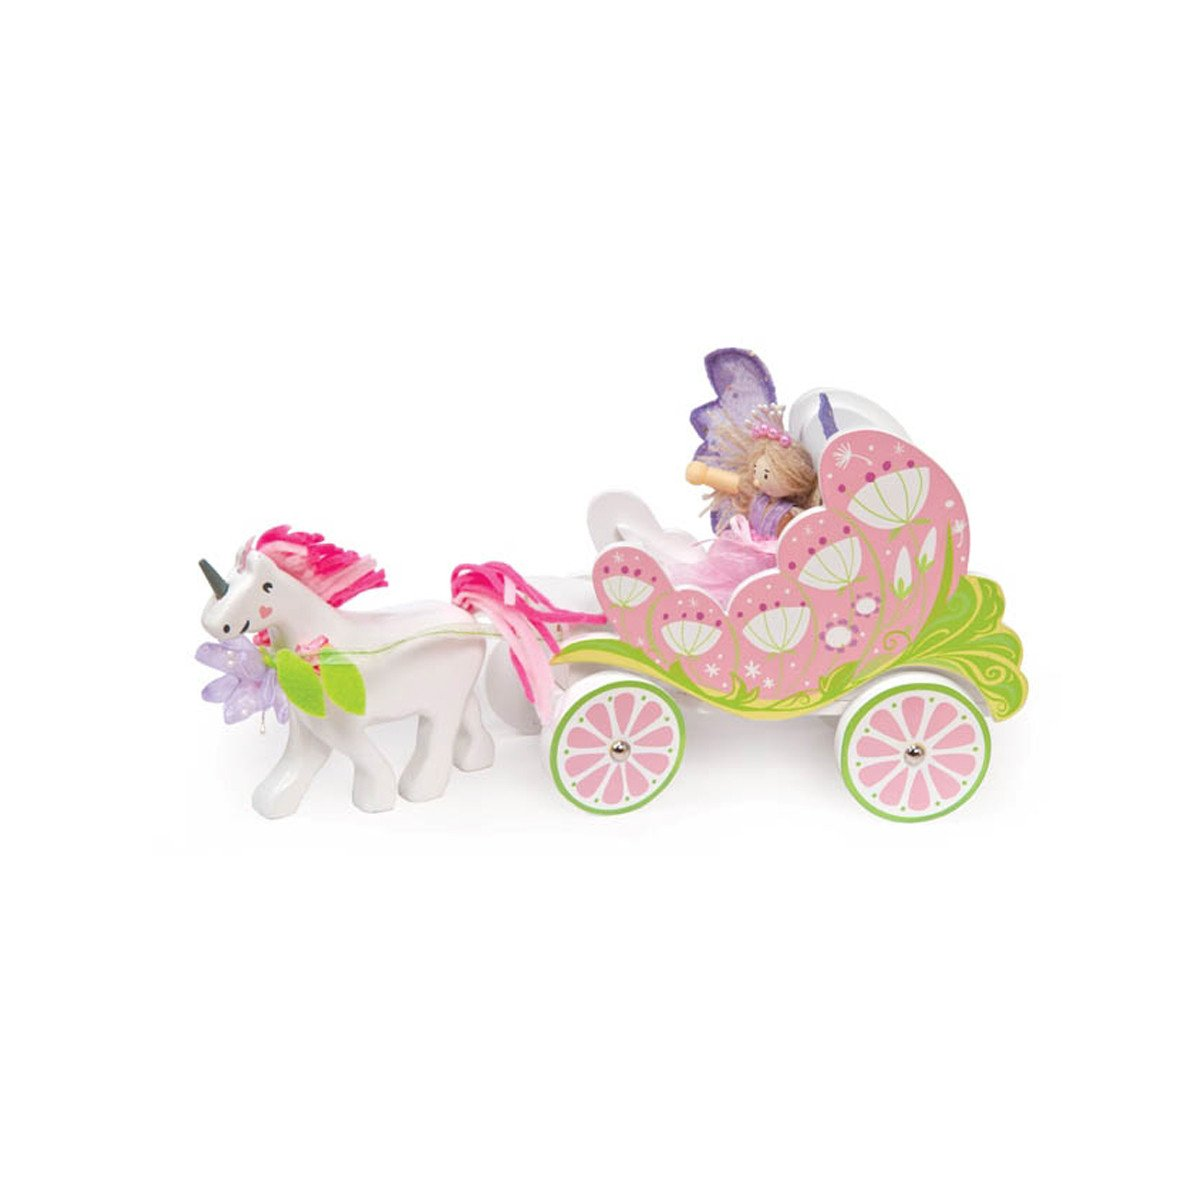 Le Toy Van Fairybelle Carriage and Unicorn   - Le Toy Van - Little Earth Nest